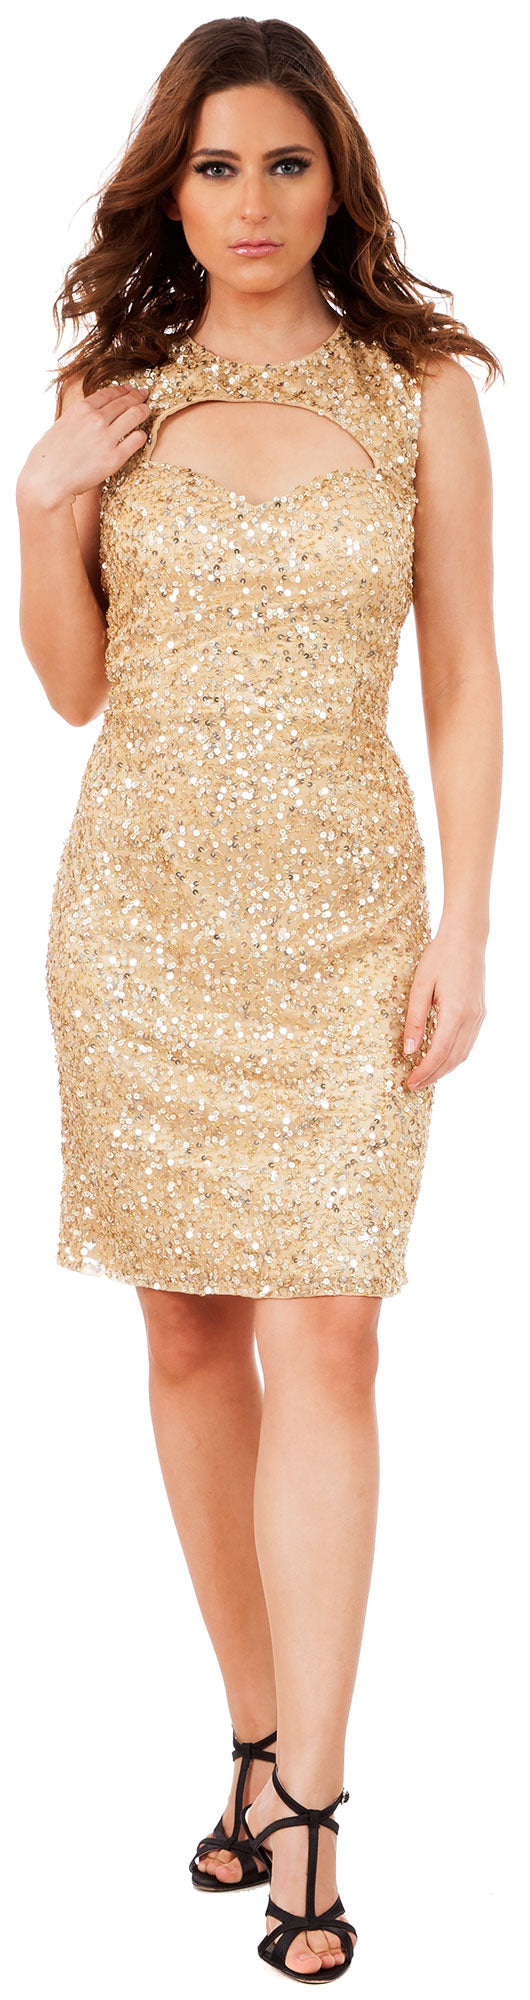 Main image of Keyhole Front & Back Short Sequined Formal Party Dress